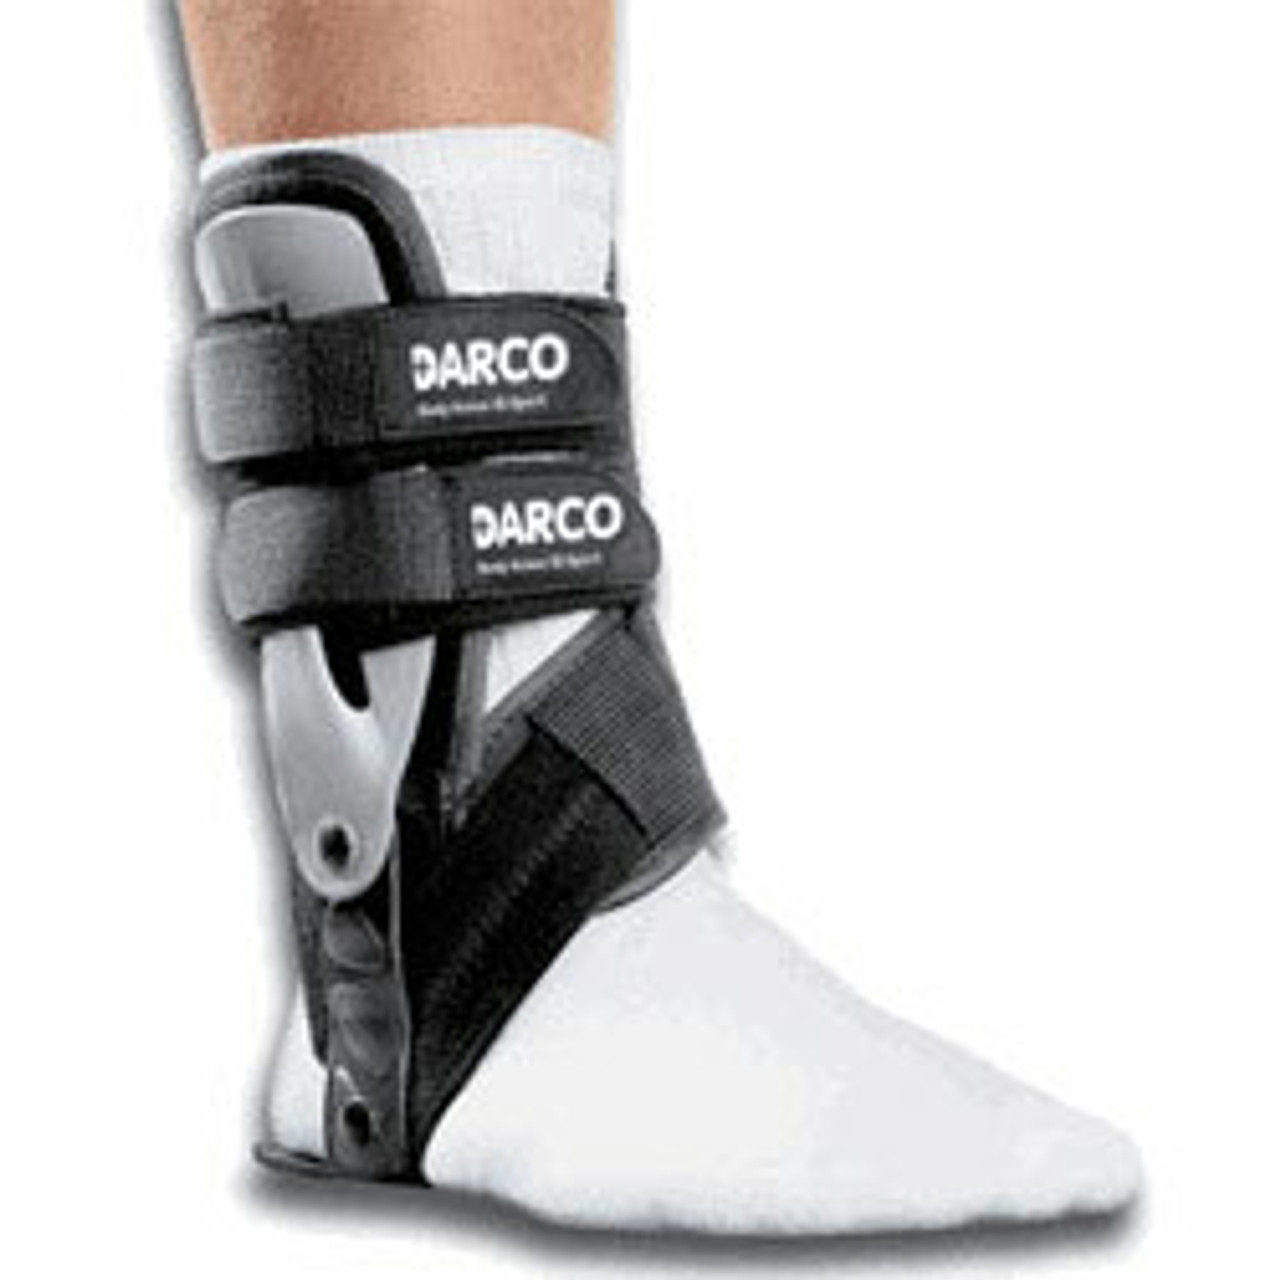 AFO Accommodating Footwear | Shoes For AFOs